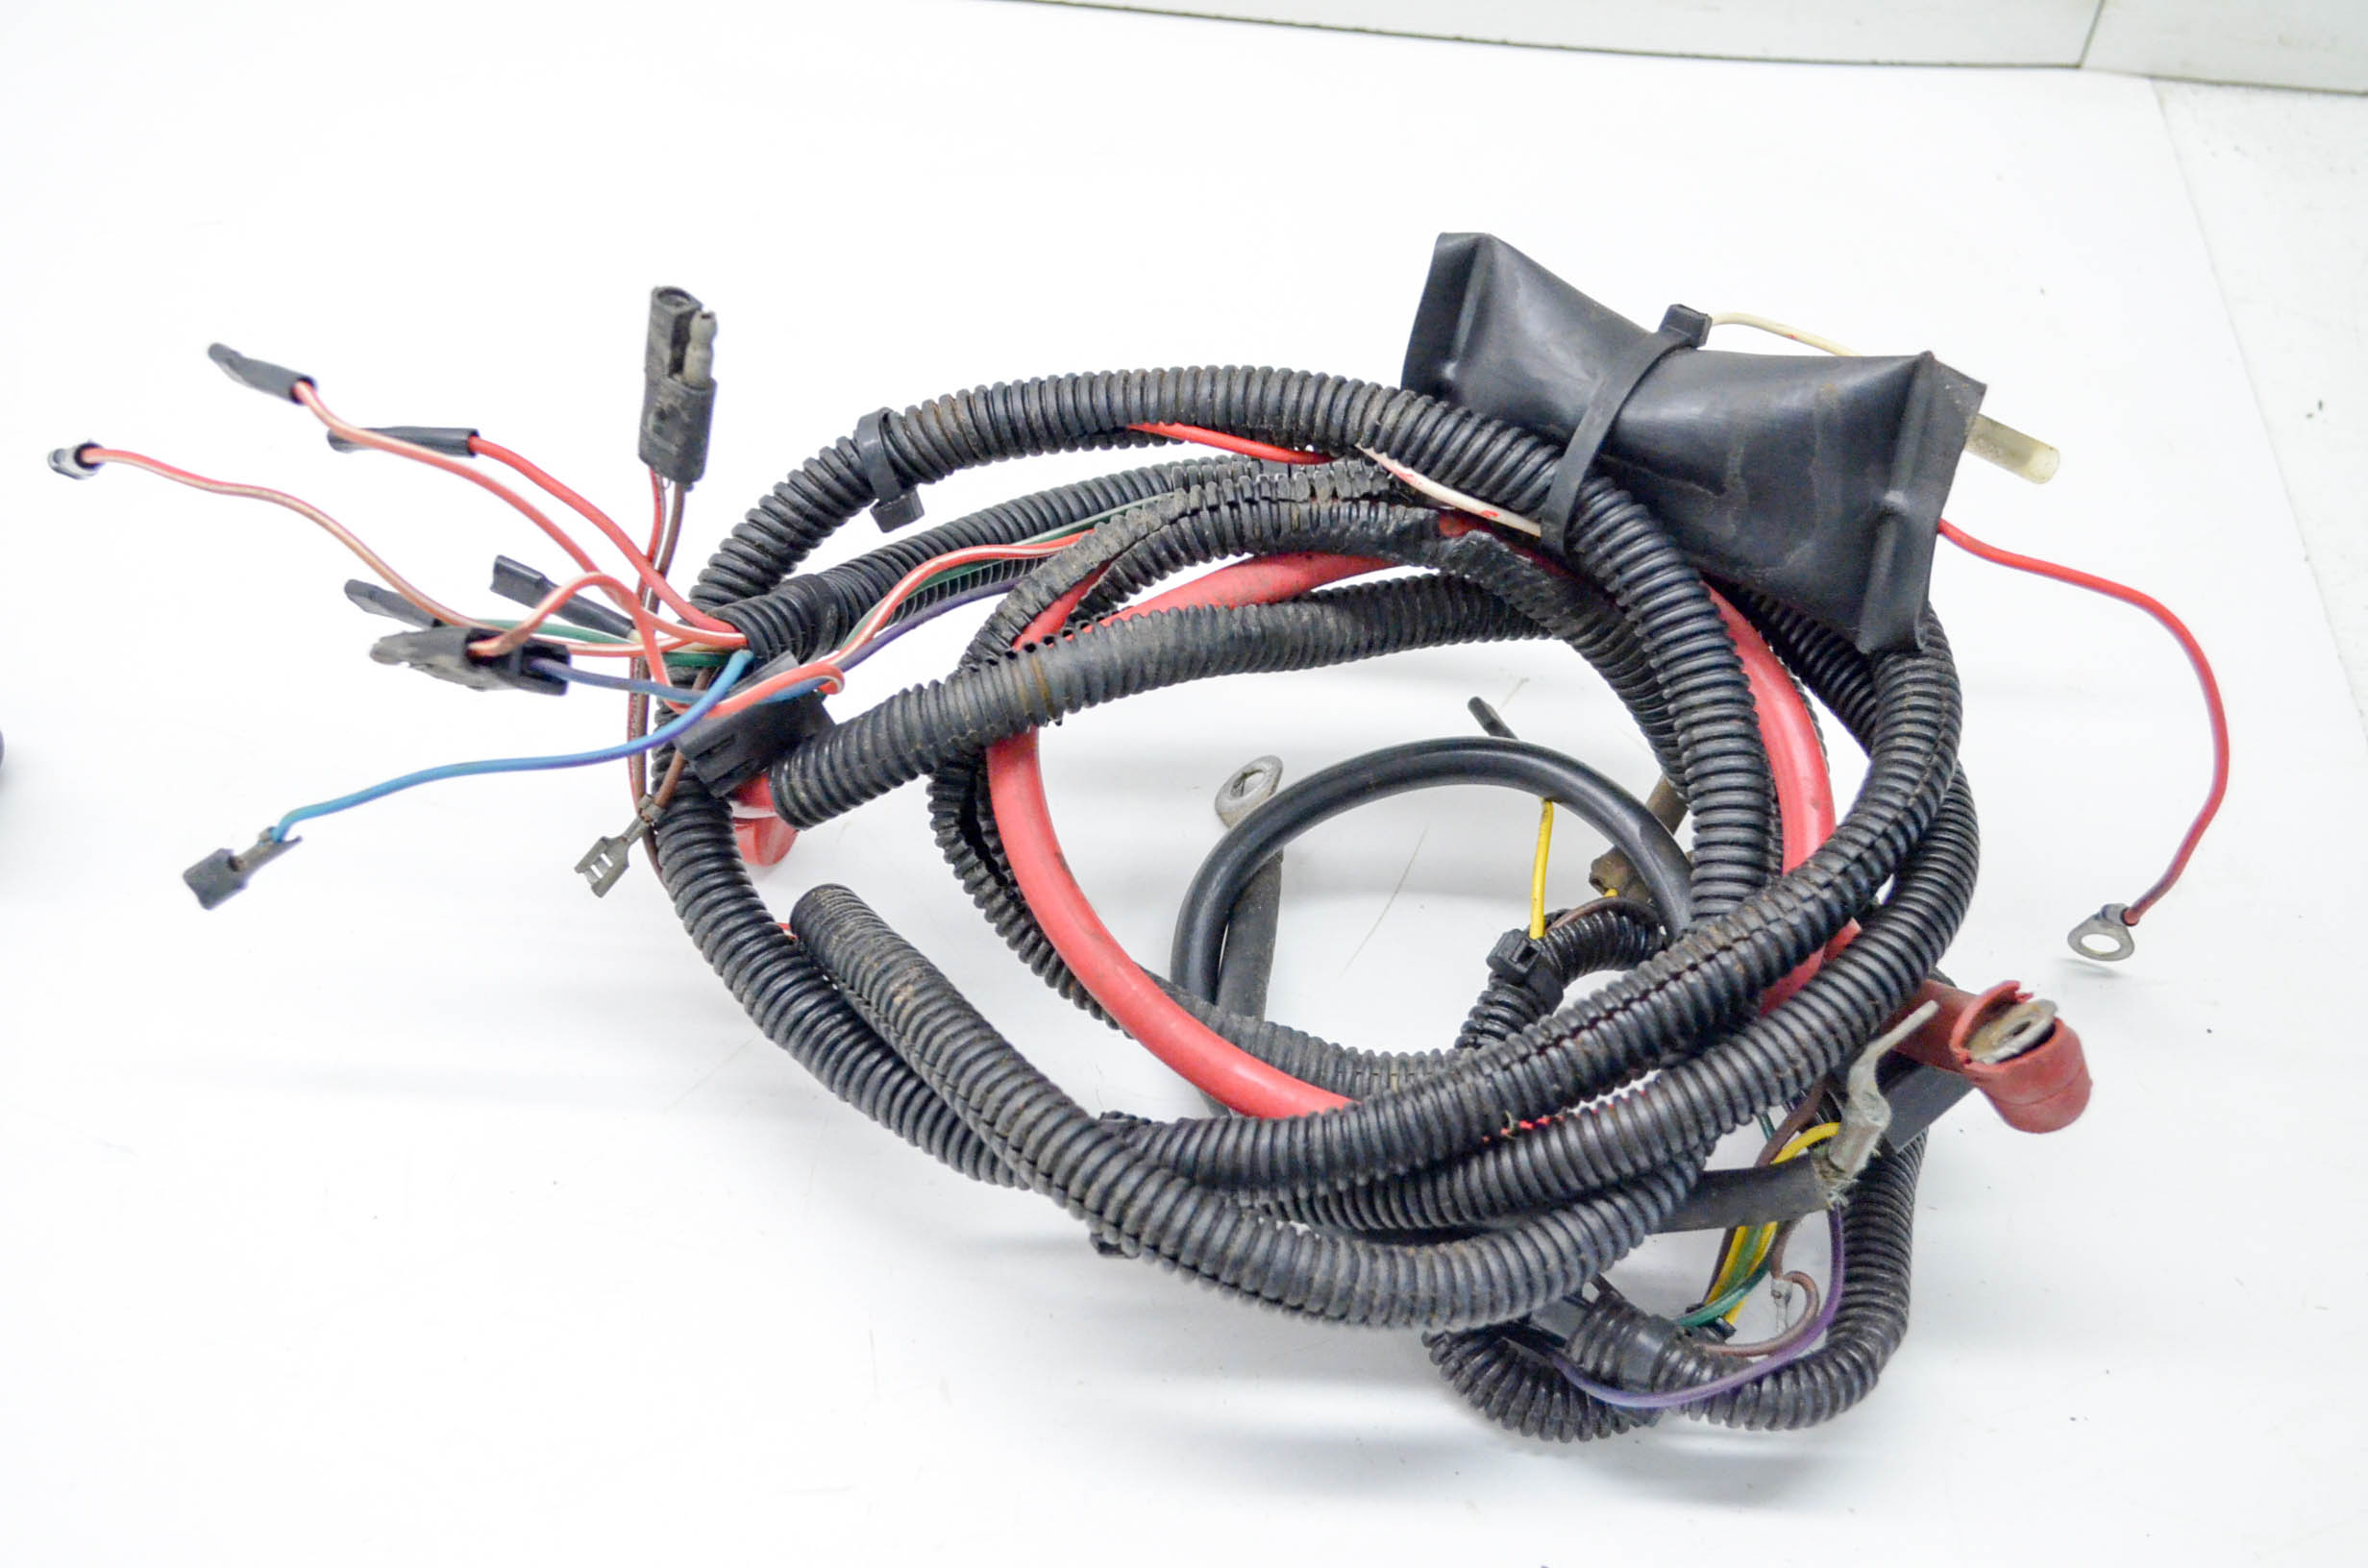 89 Polaris Trail Boss 250 2x4 Wire Harness Electrical